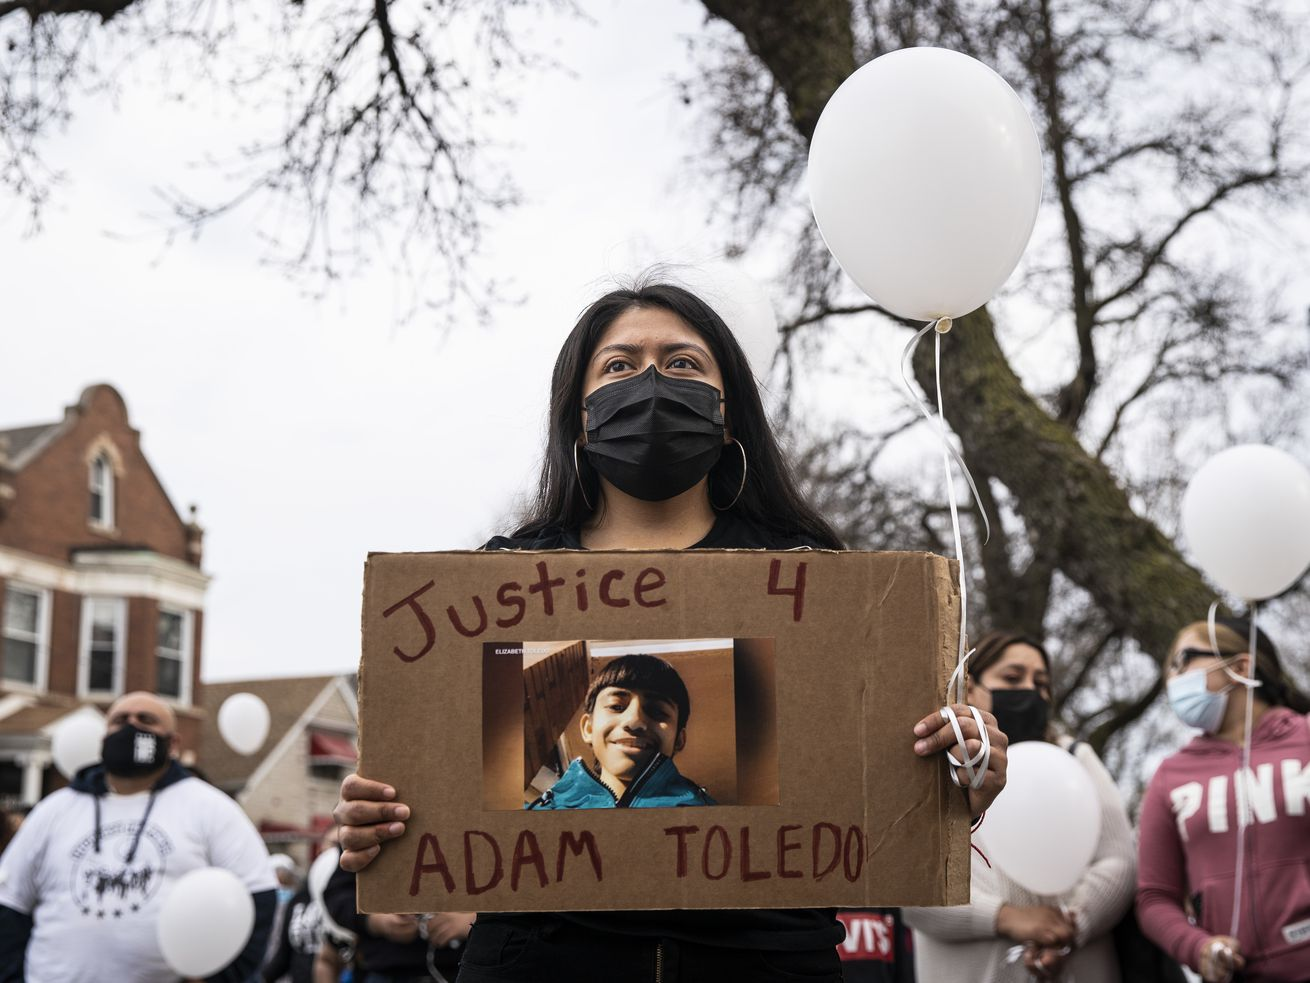 Ana Solano, 26, of Little Village, joins dozens Monday afternoon at a vigil for 13-year-old Adam Toledo near the location of the shooting at West 24th Street and South Sawyer Avenue in Little Village.